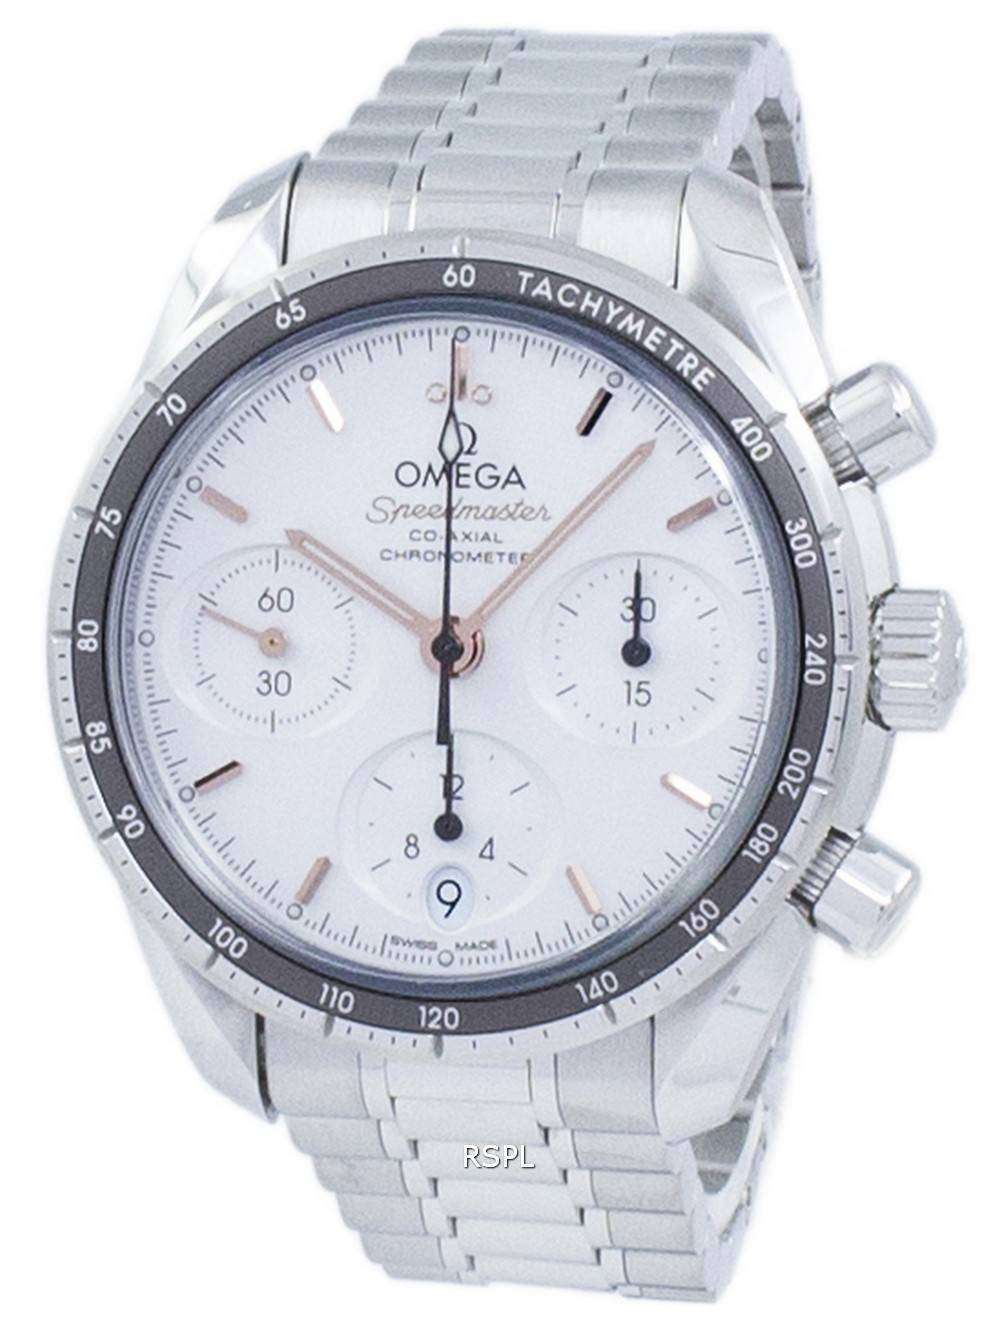 72e5f8bb733 Omega Speedmaster Co-Axial Chronograph Automatic 324.30.38.50.02.001 Unisex  Watch